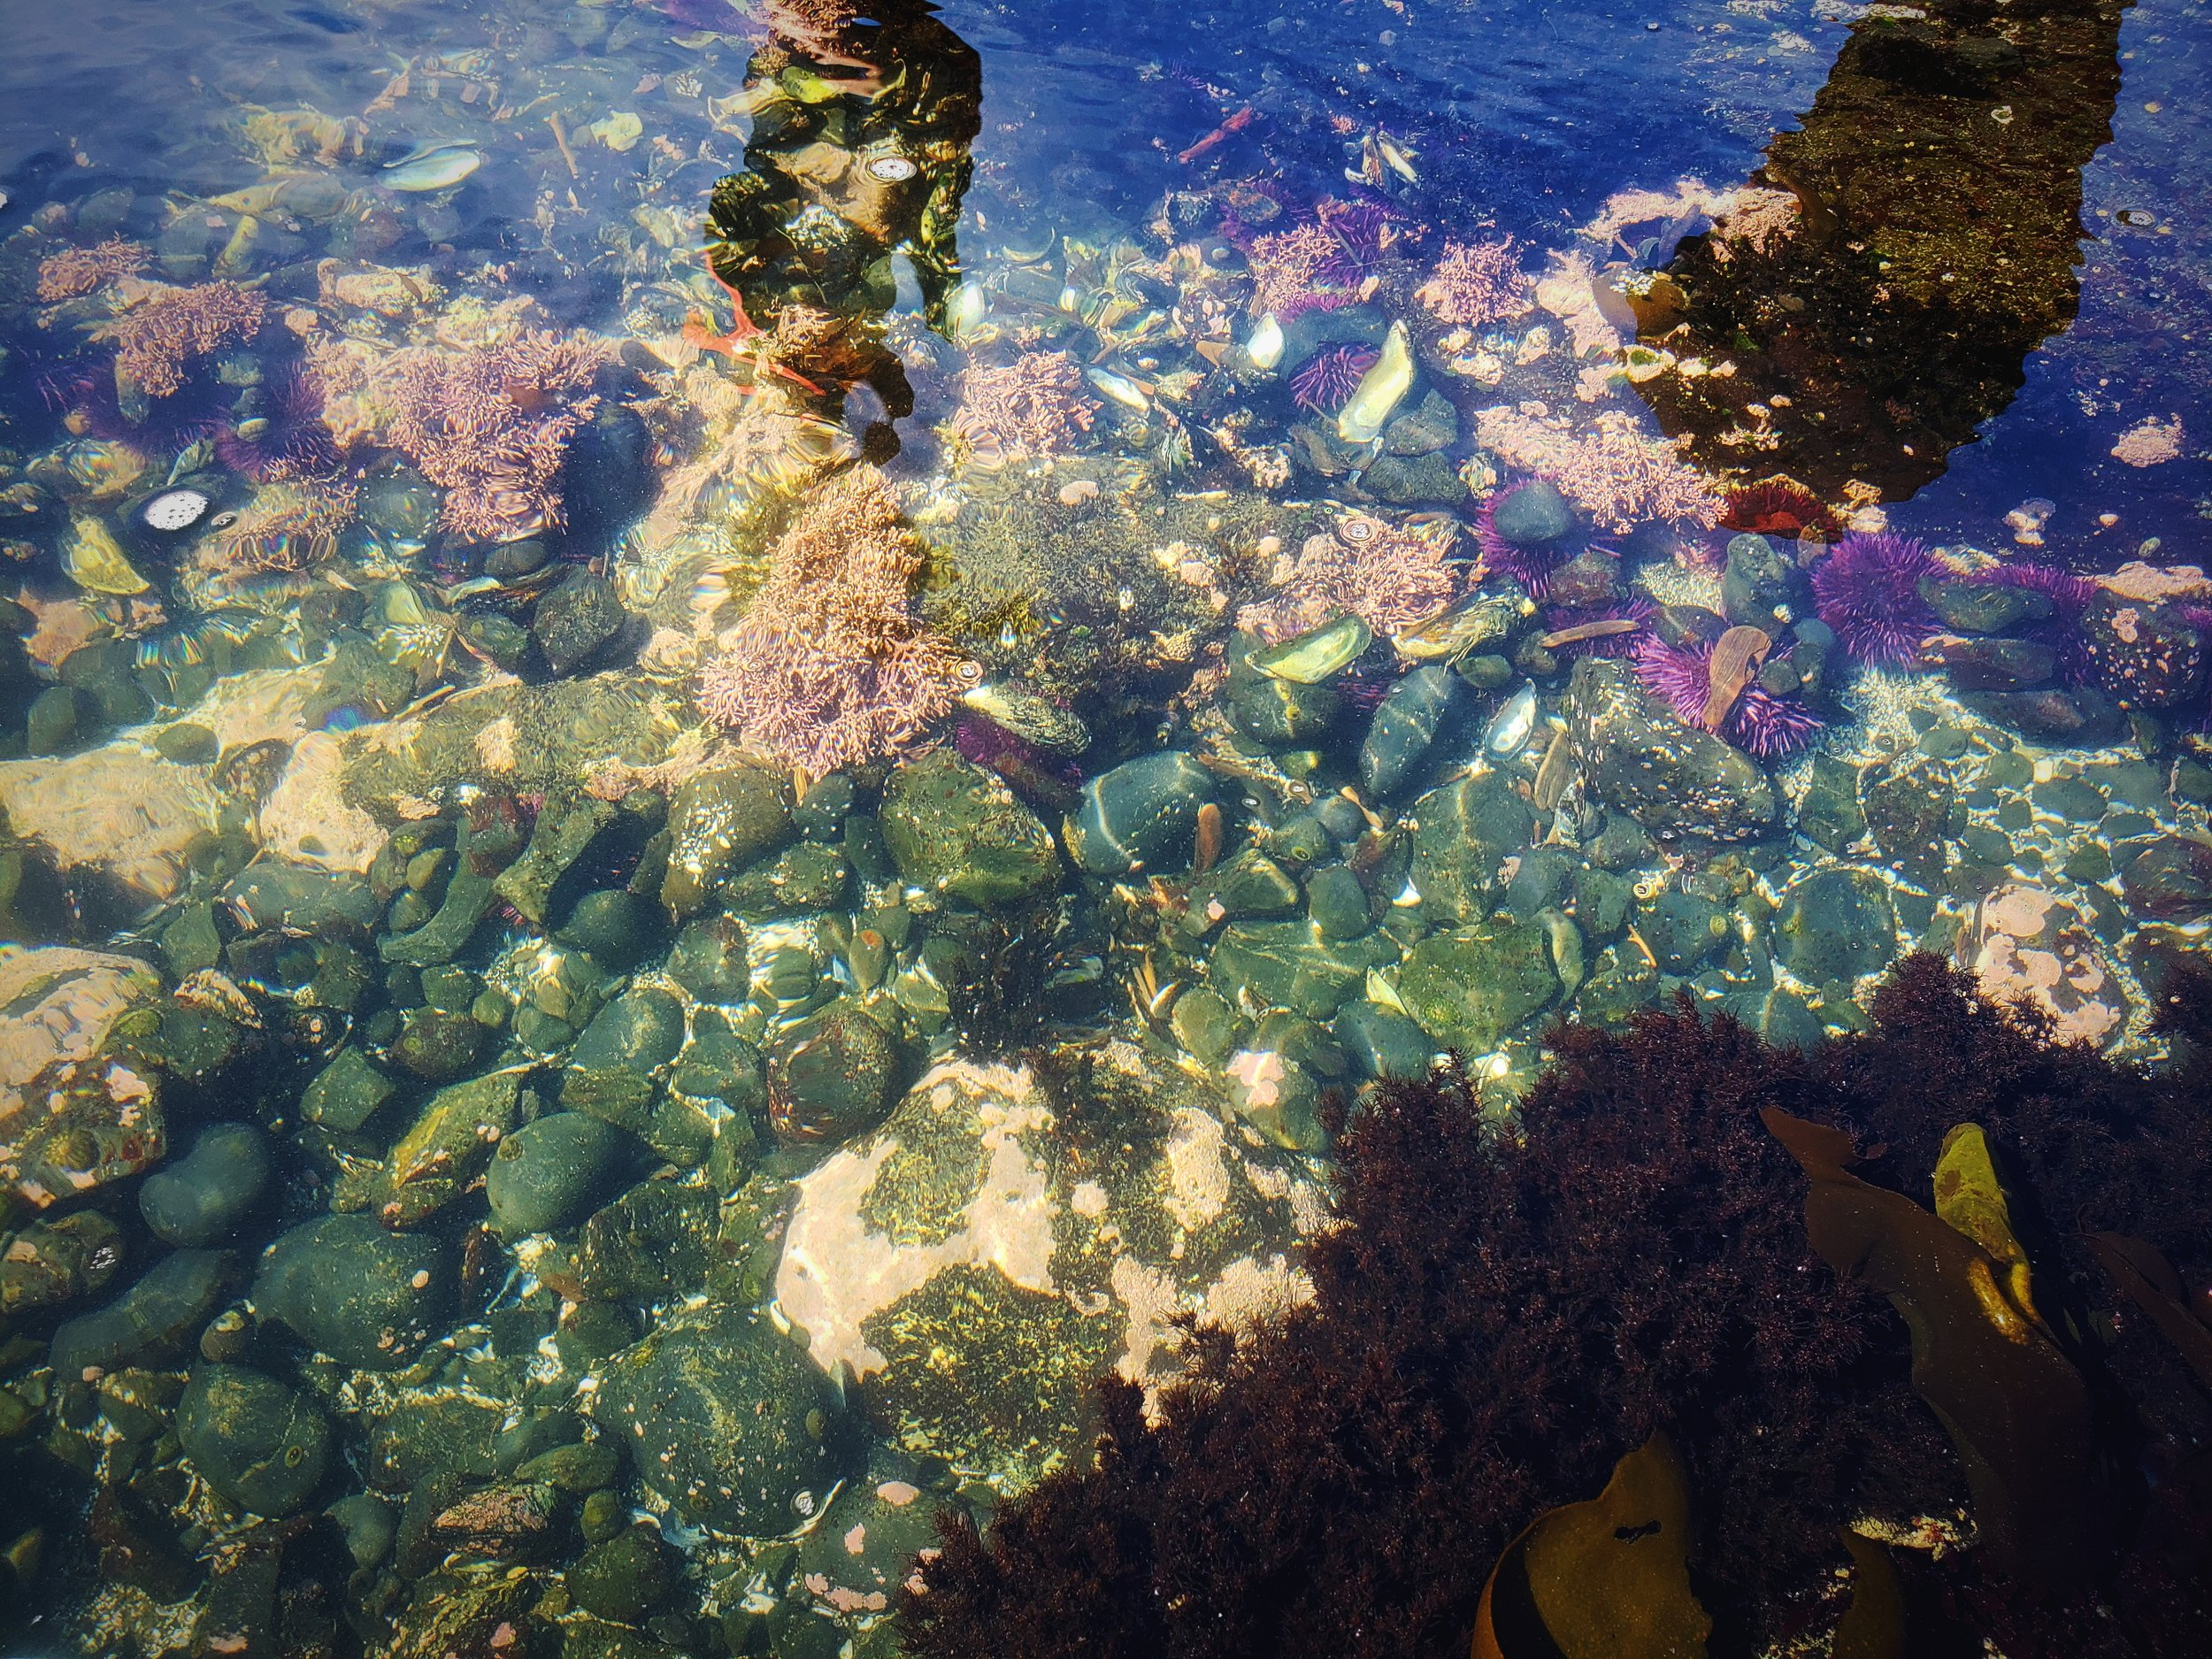 The purple urchins and the various types of kelp and algae create a great contrast against the black stones.